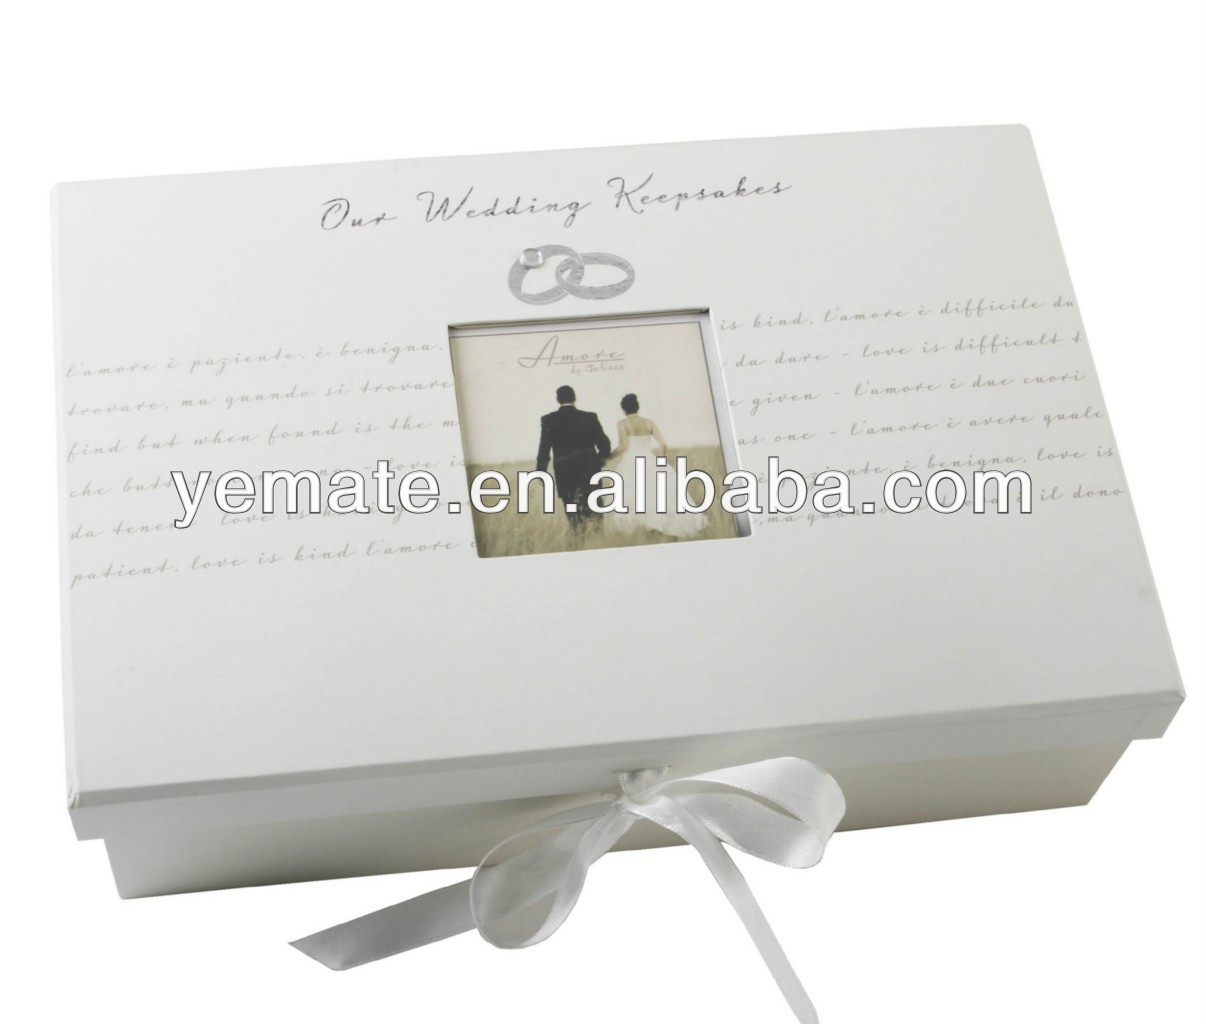 2013 new style high quality satin lined white gift boxes,handmade paper gift boxes market tray gift boxes with ribbon bow